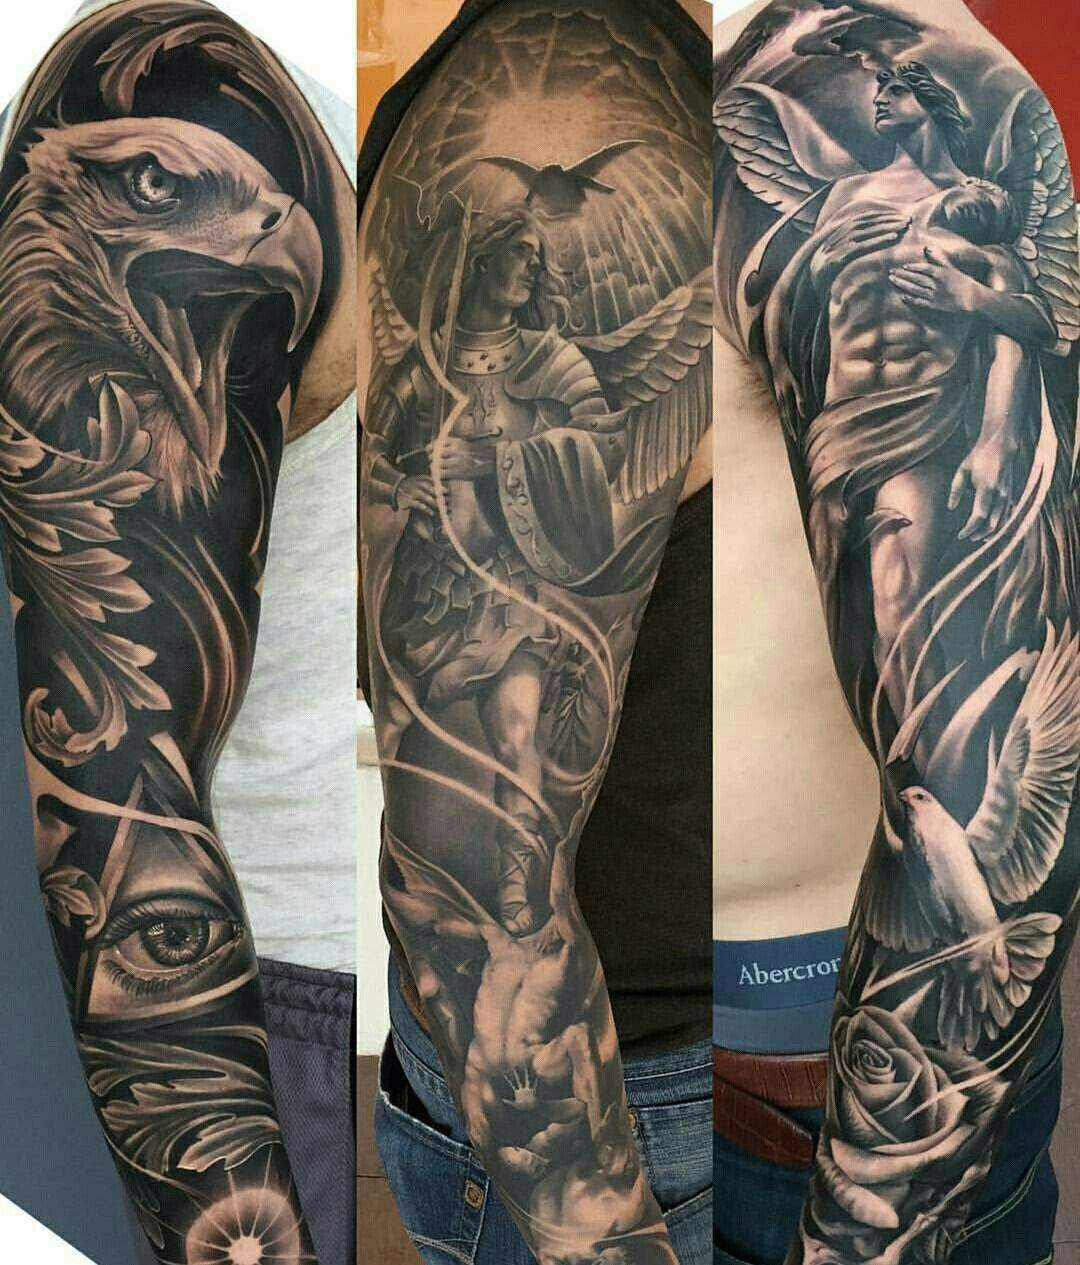 Full Shoulder and Forearm Tattoo Sleeve | Ink~Red!ble | Tattoos in ...